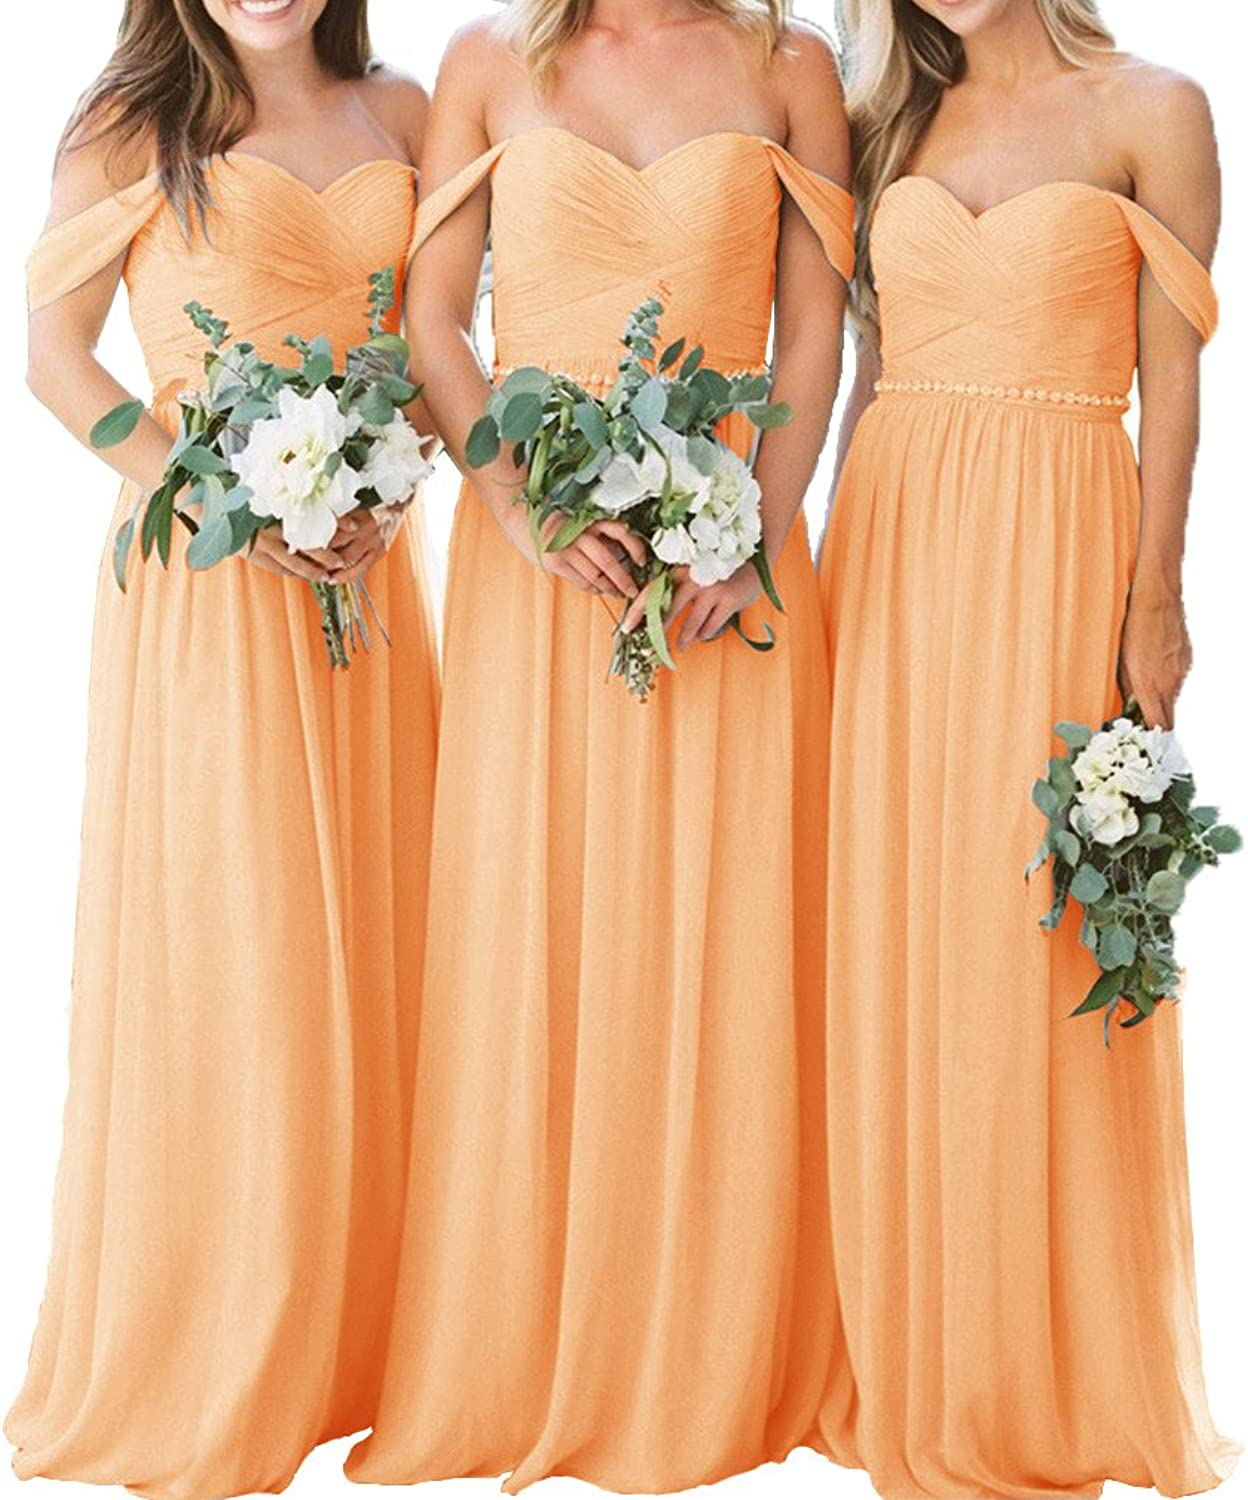 Fashionbride Women's Wedding Party Gown with Crystal Belt Off Shoulder Bridesmaid Dresses Long ED63